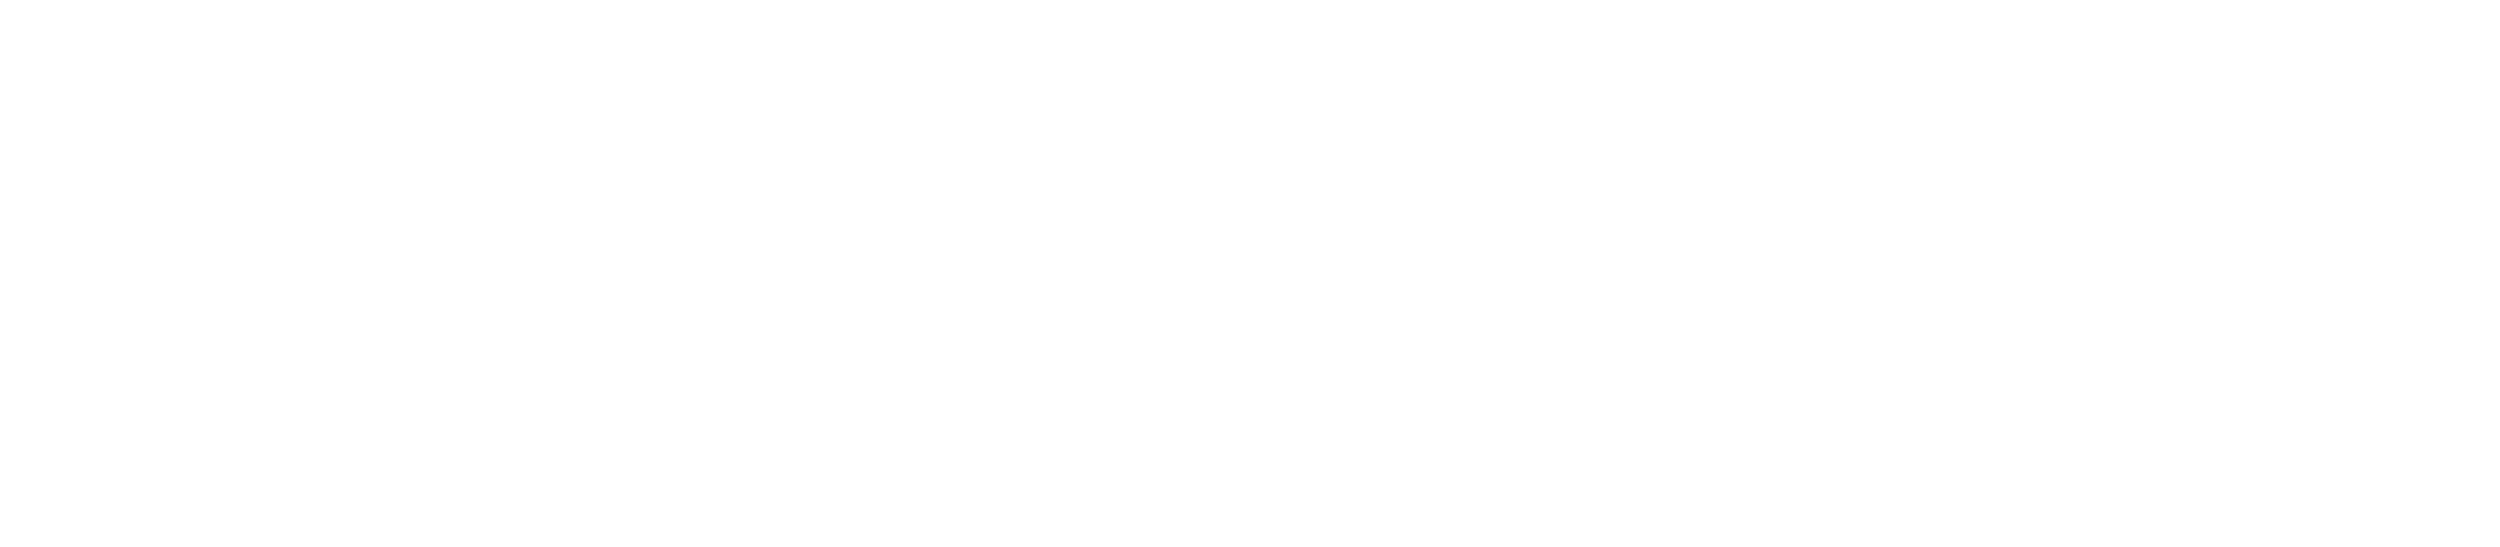 Dara Levy Events